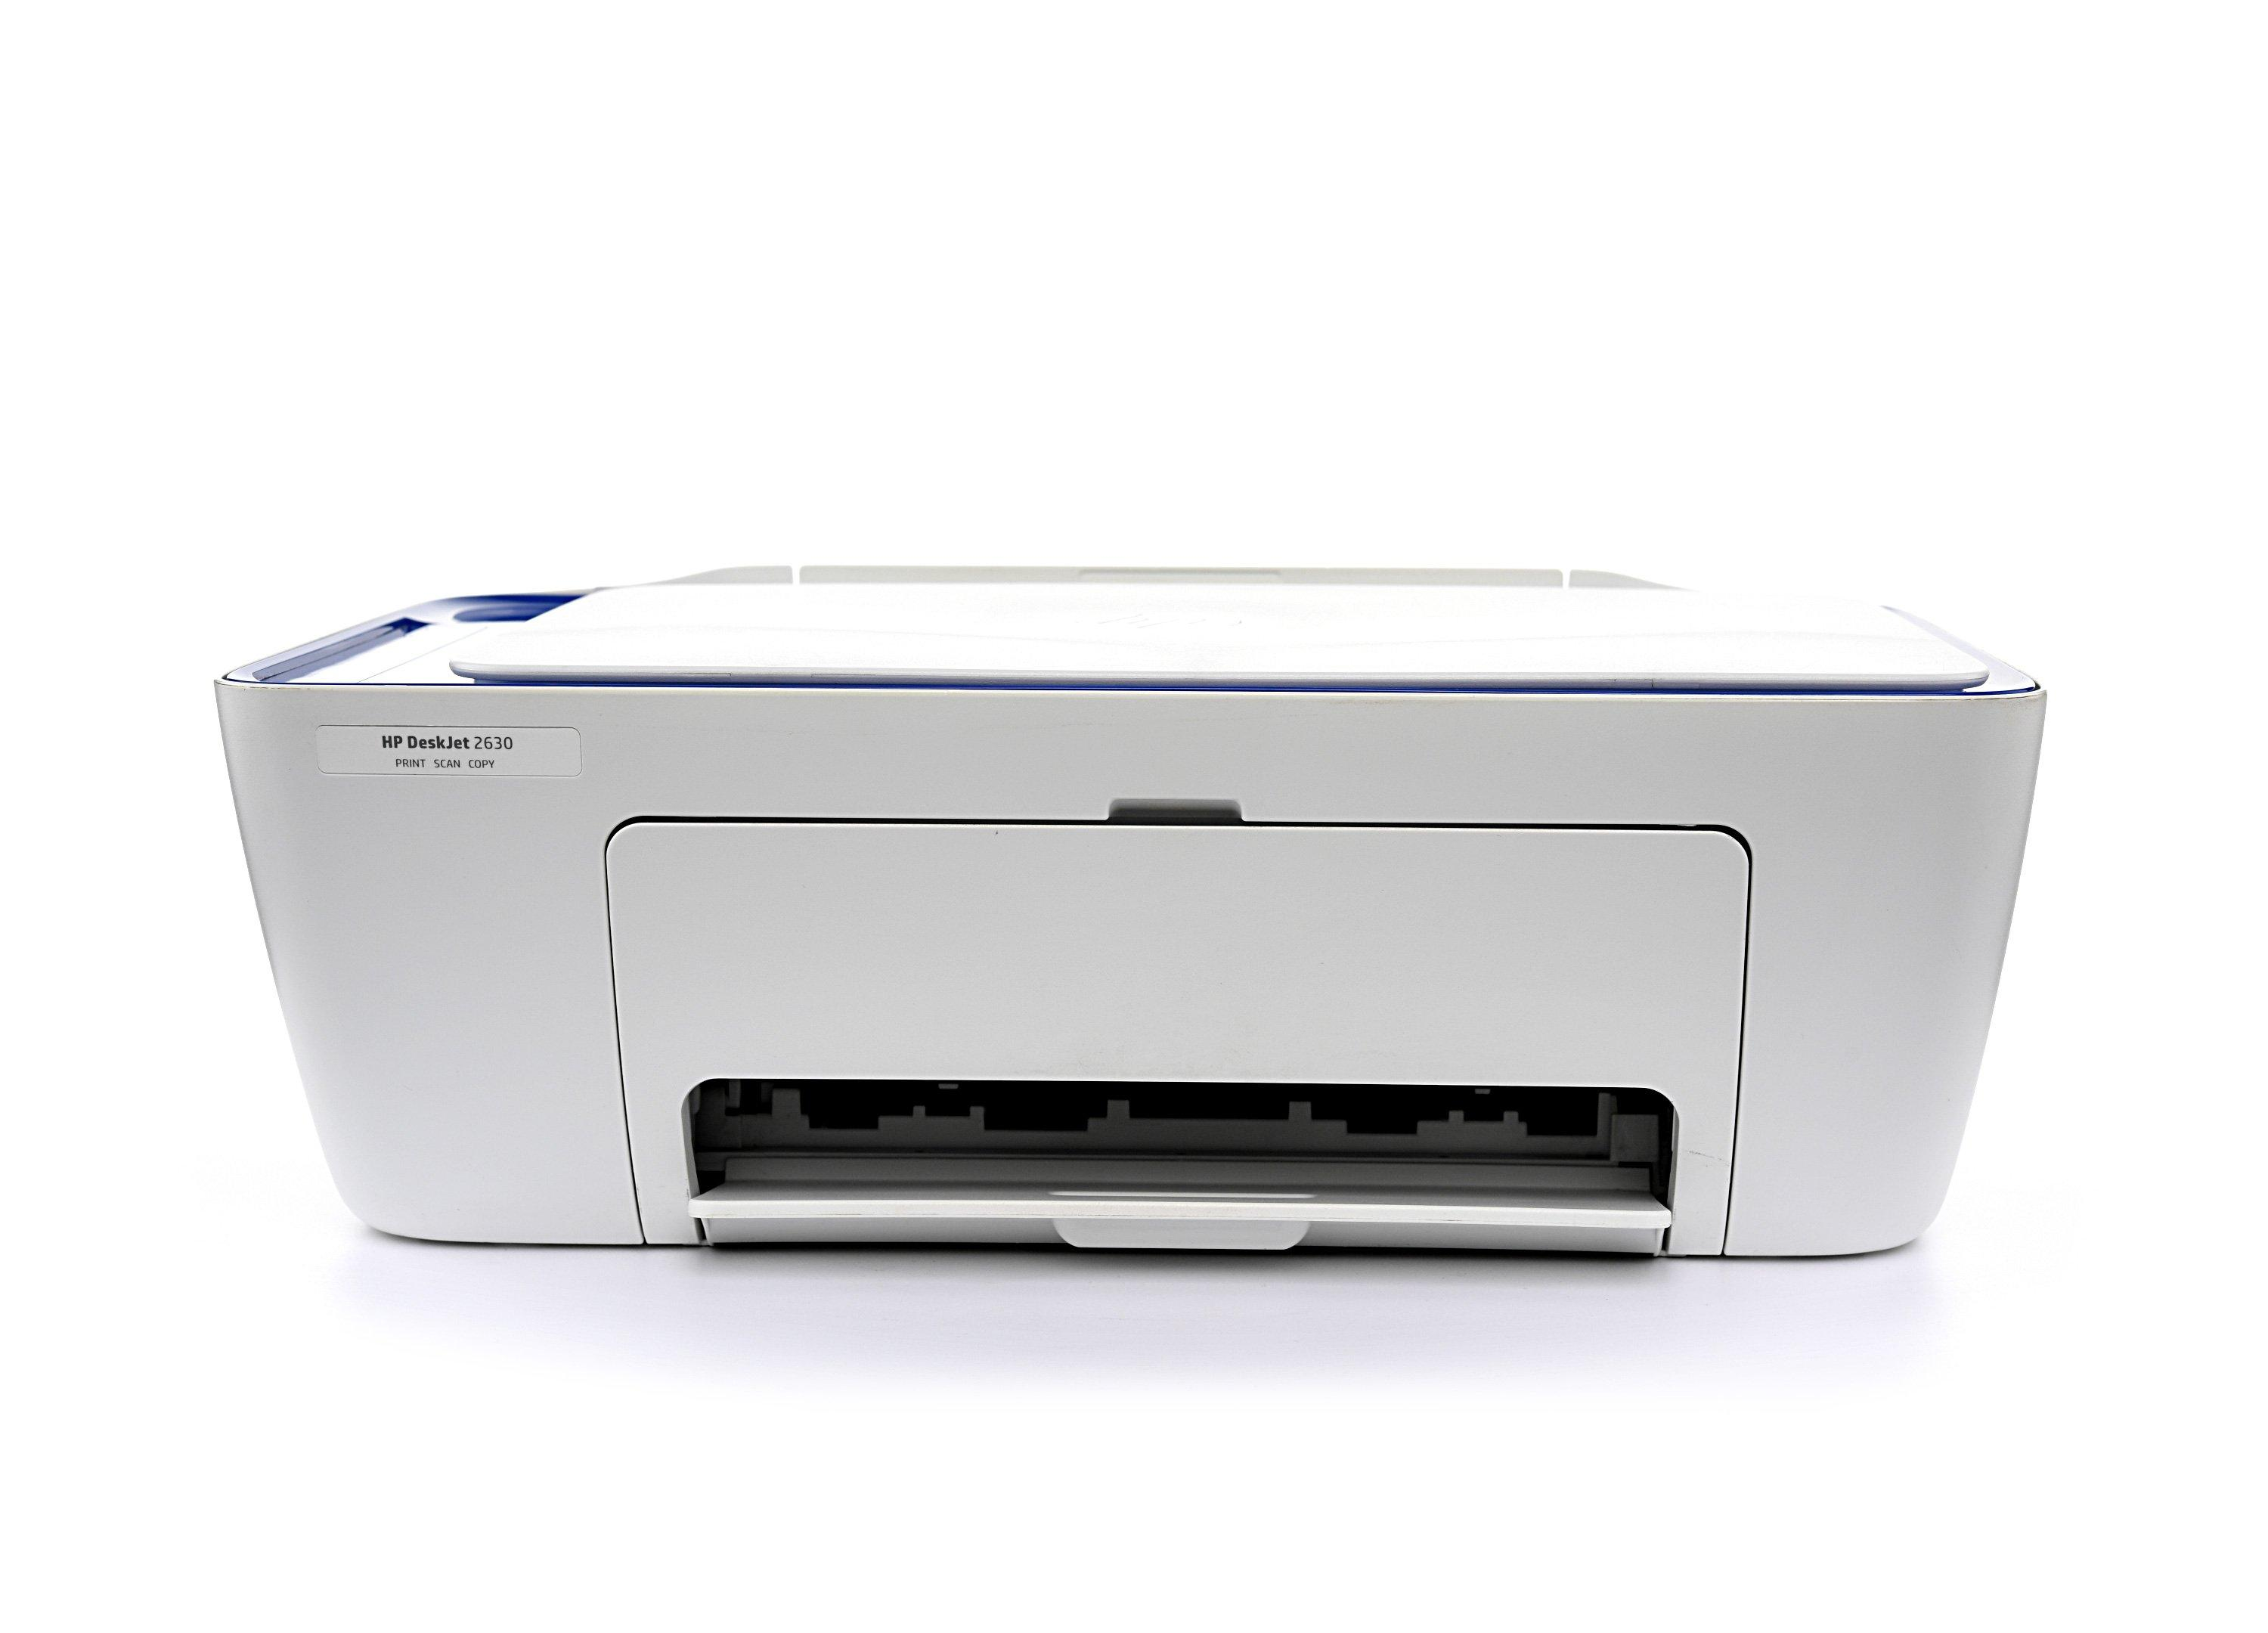 HP DeskJet 2630 All-in-One Prnter - Print, copy, scan, wireless